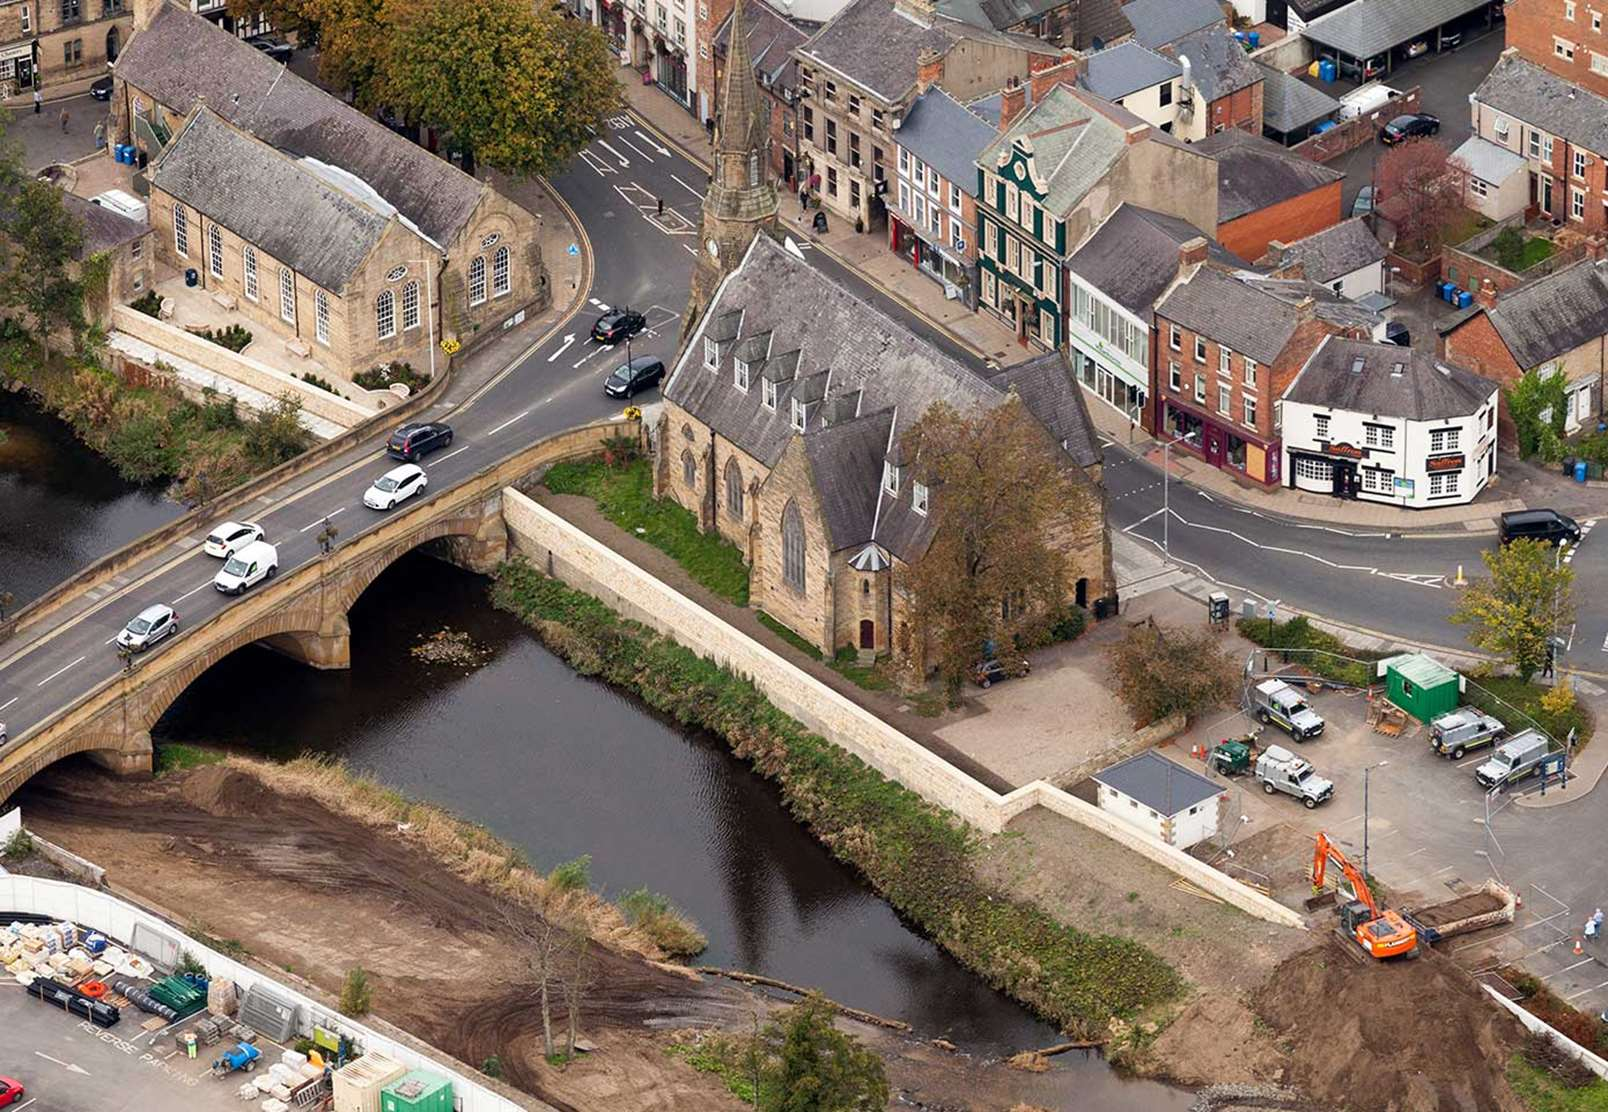 Morpeth Flood alleviation scheme